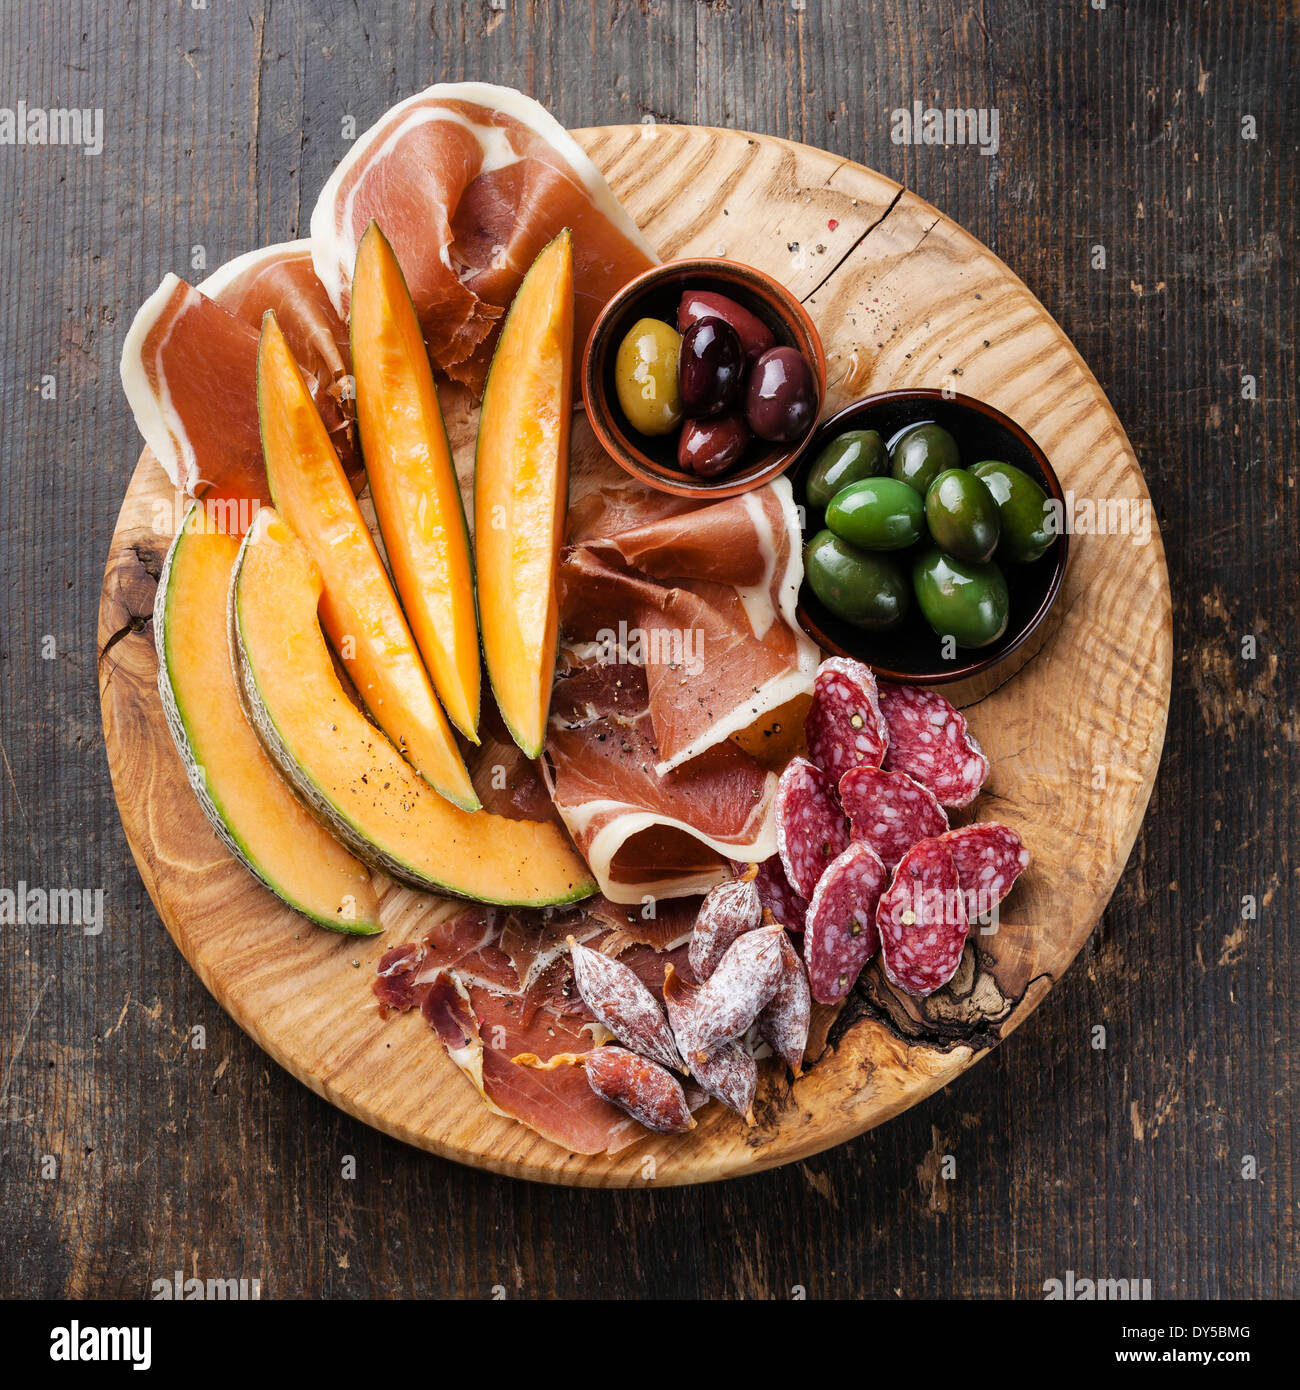 Antipasto ham, melon and olives on wooden background - Stock Image